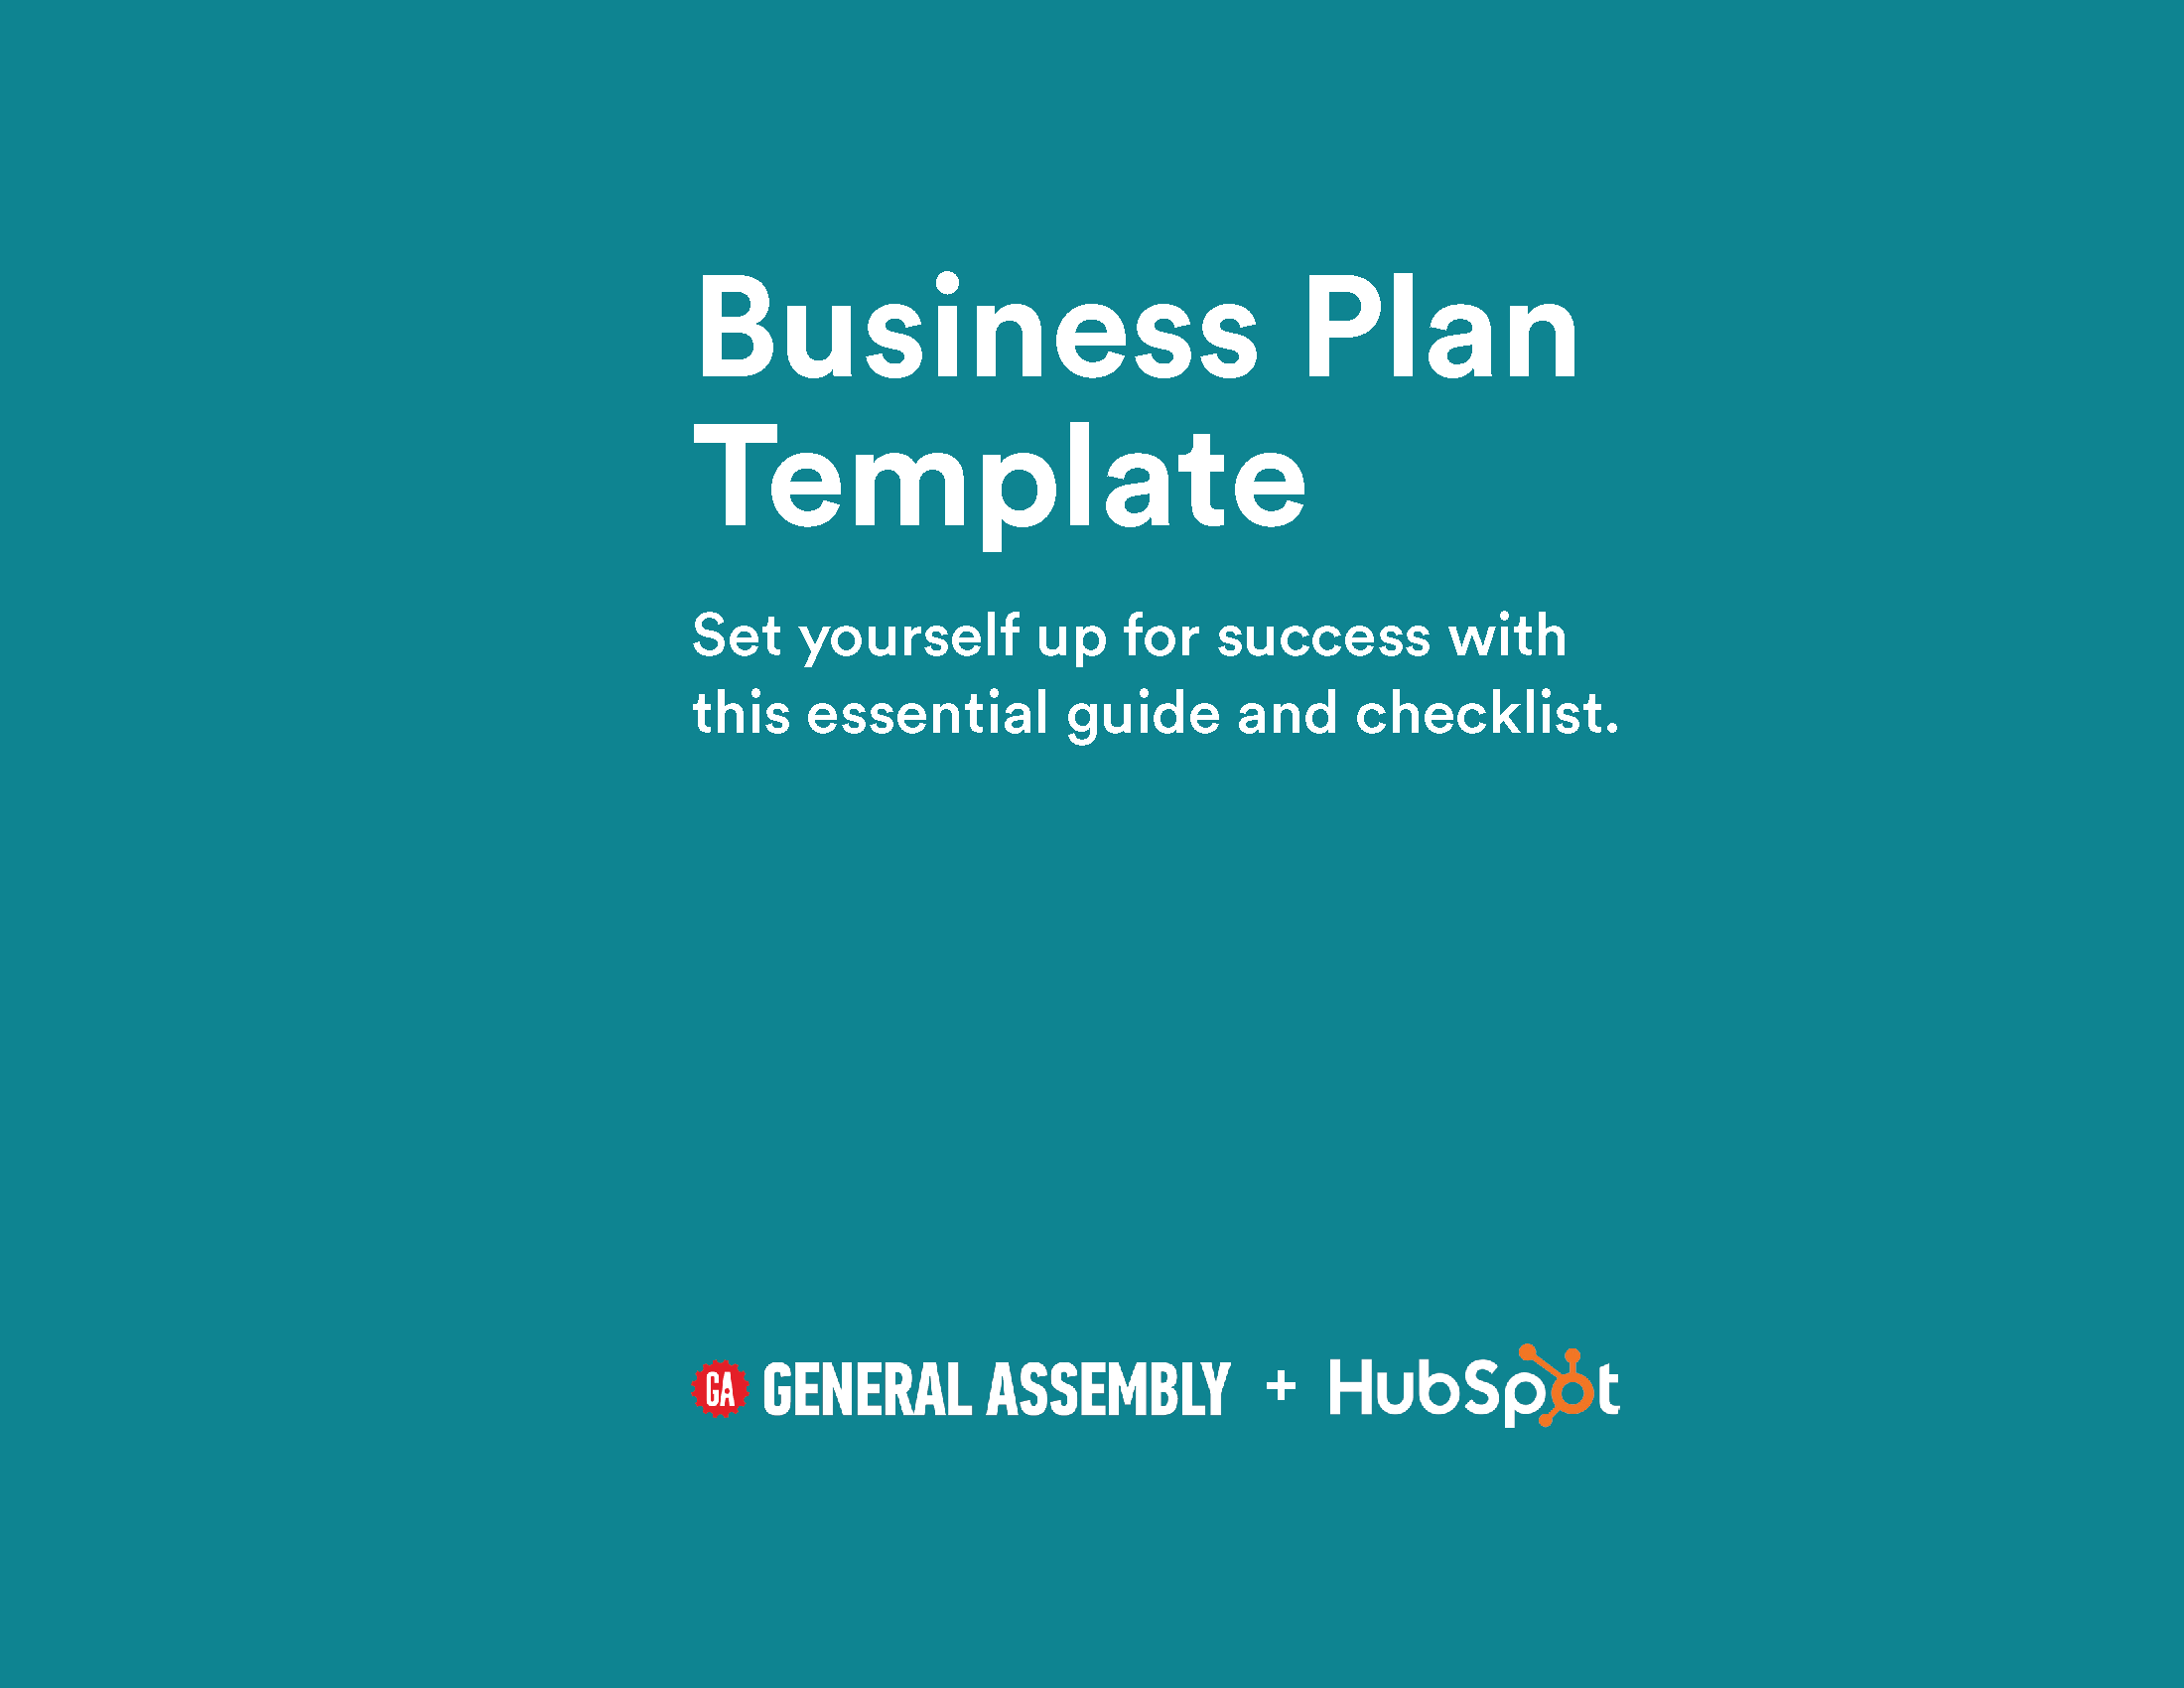 General Business Plan Template Startup Business Plan Template - General business plan template